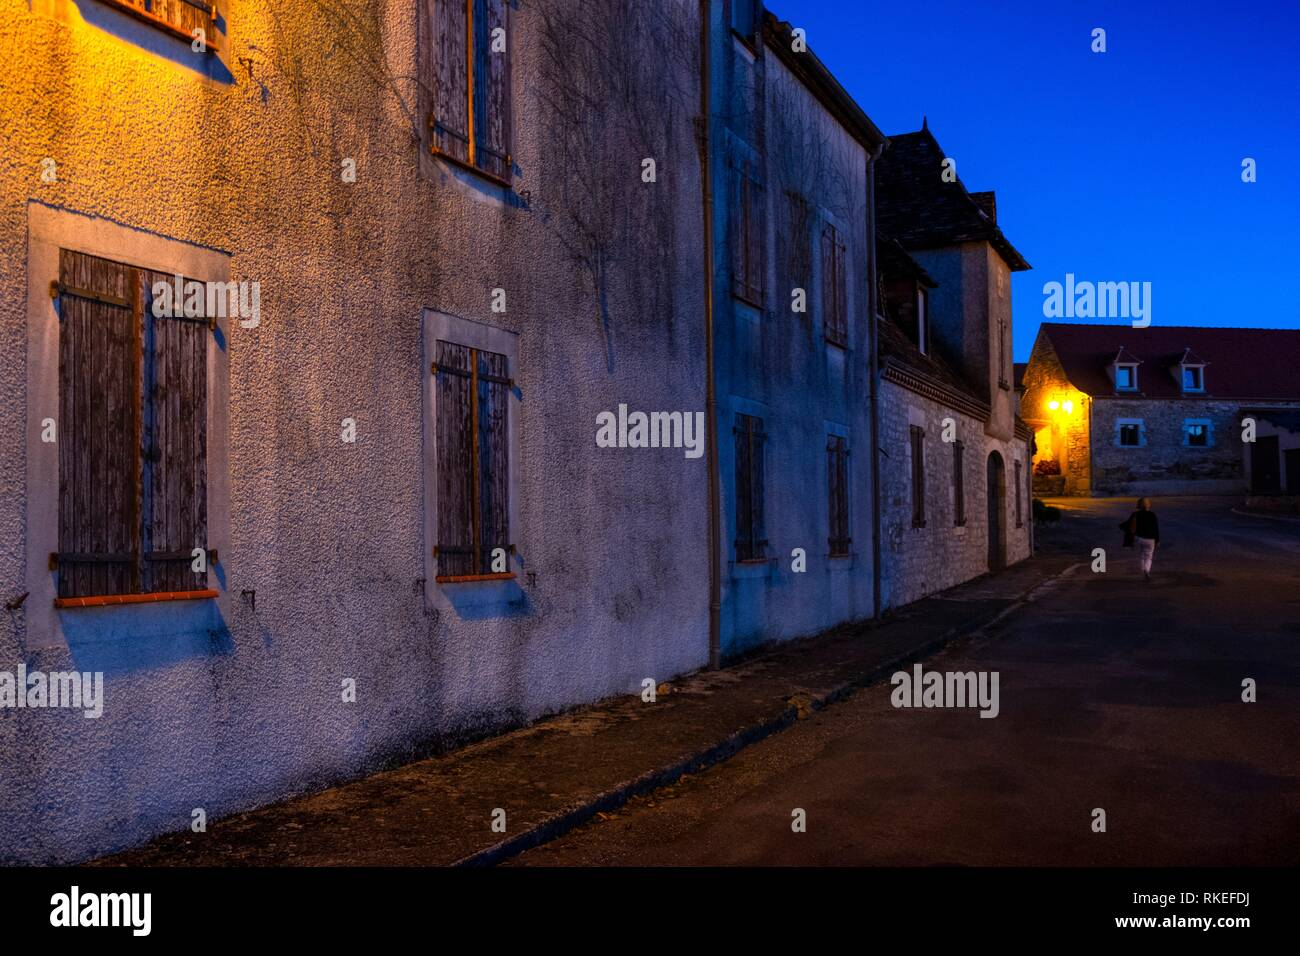 France, Occitanie, Lot, at the village of Payrac. - Stock Image